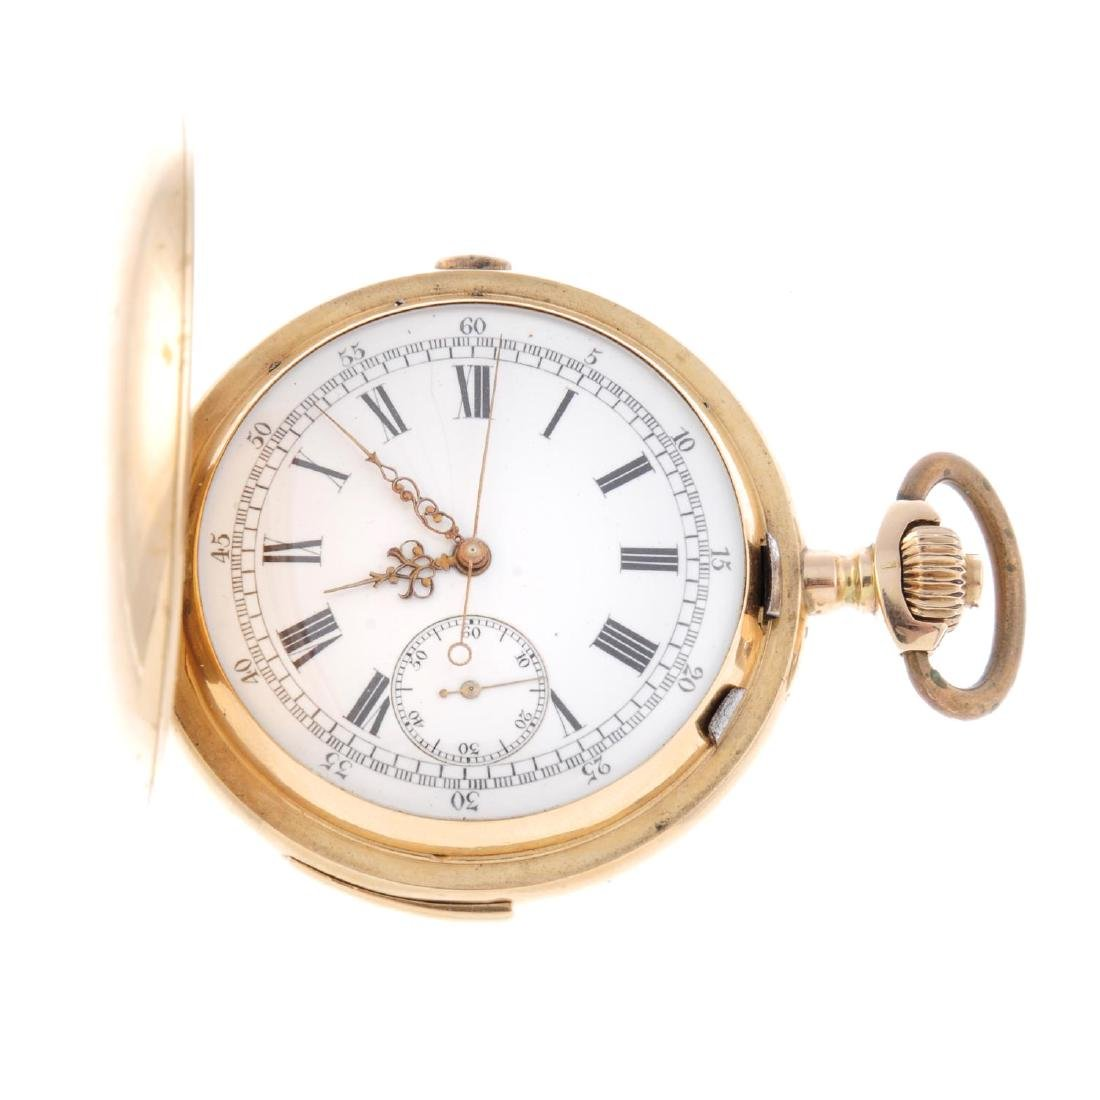 A full hunter repeater chronograph pocket watch. Yellow